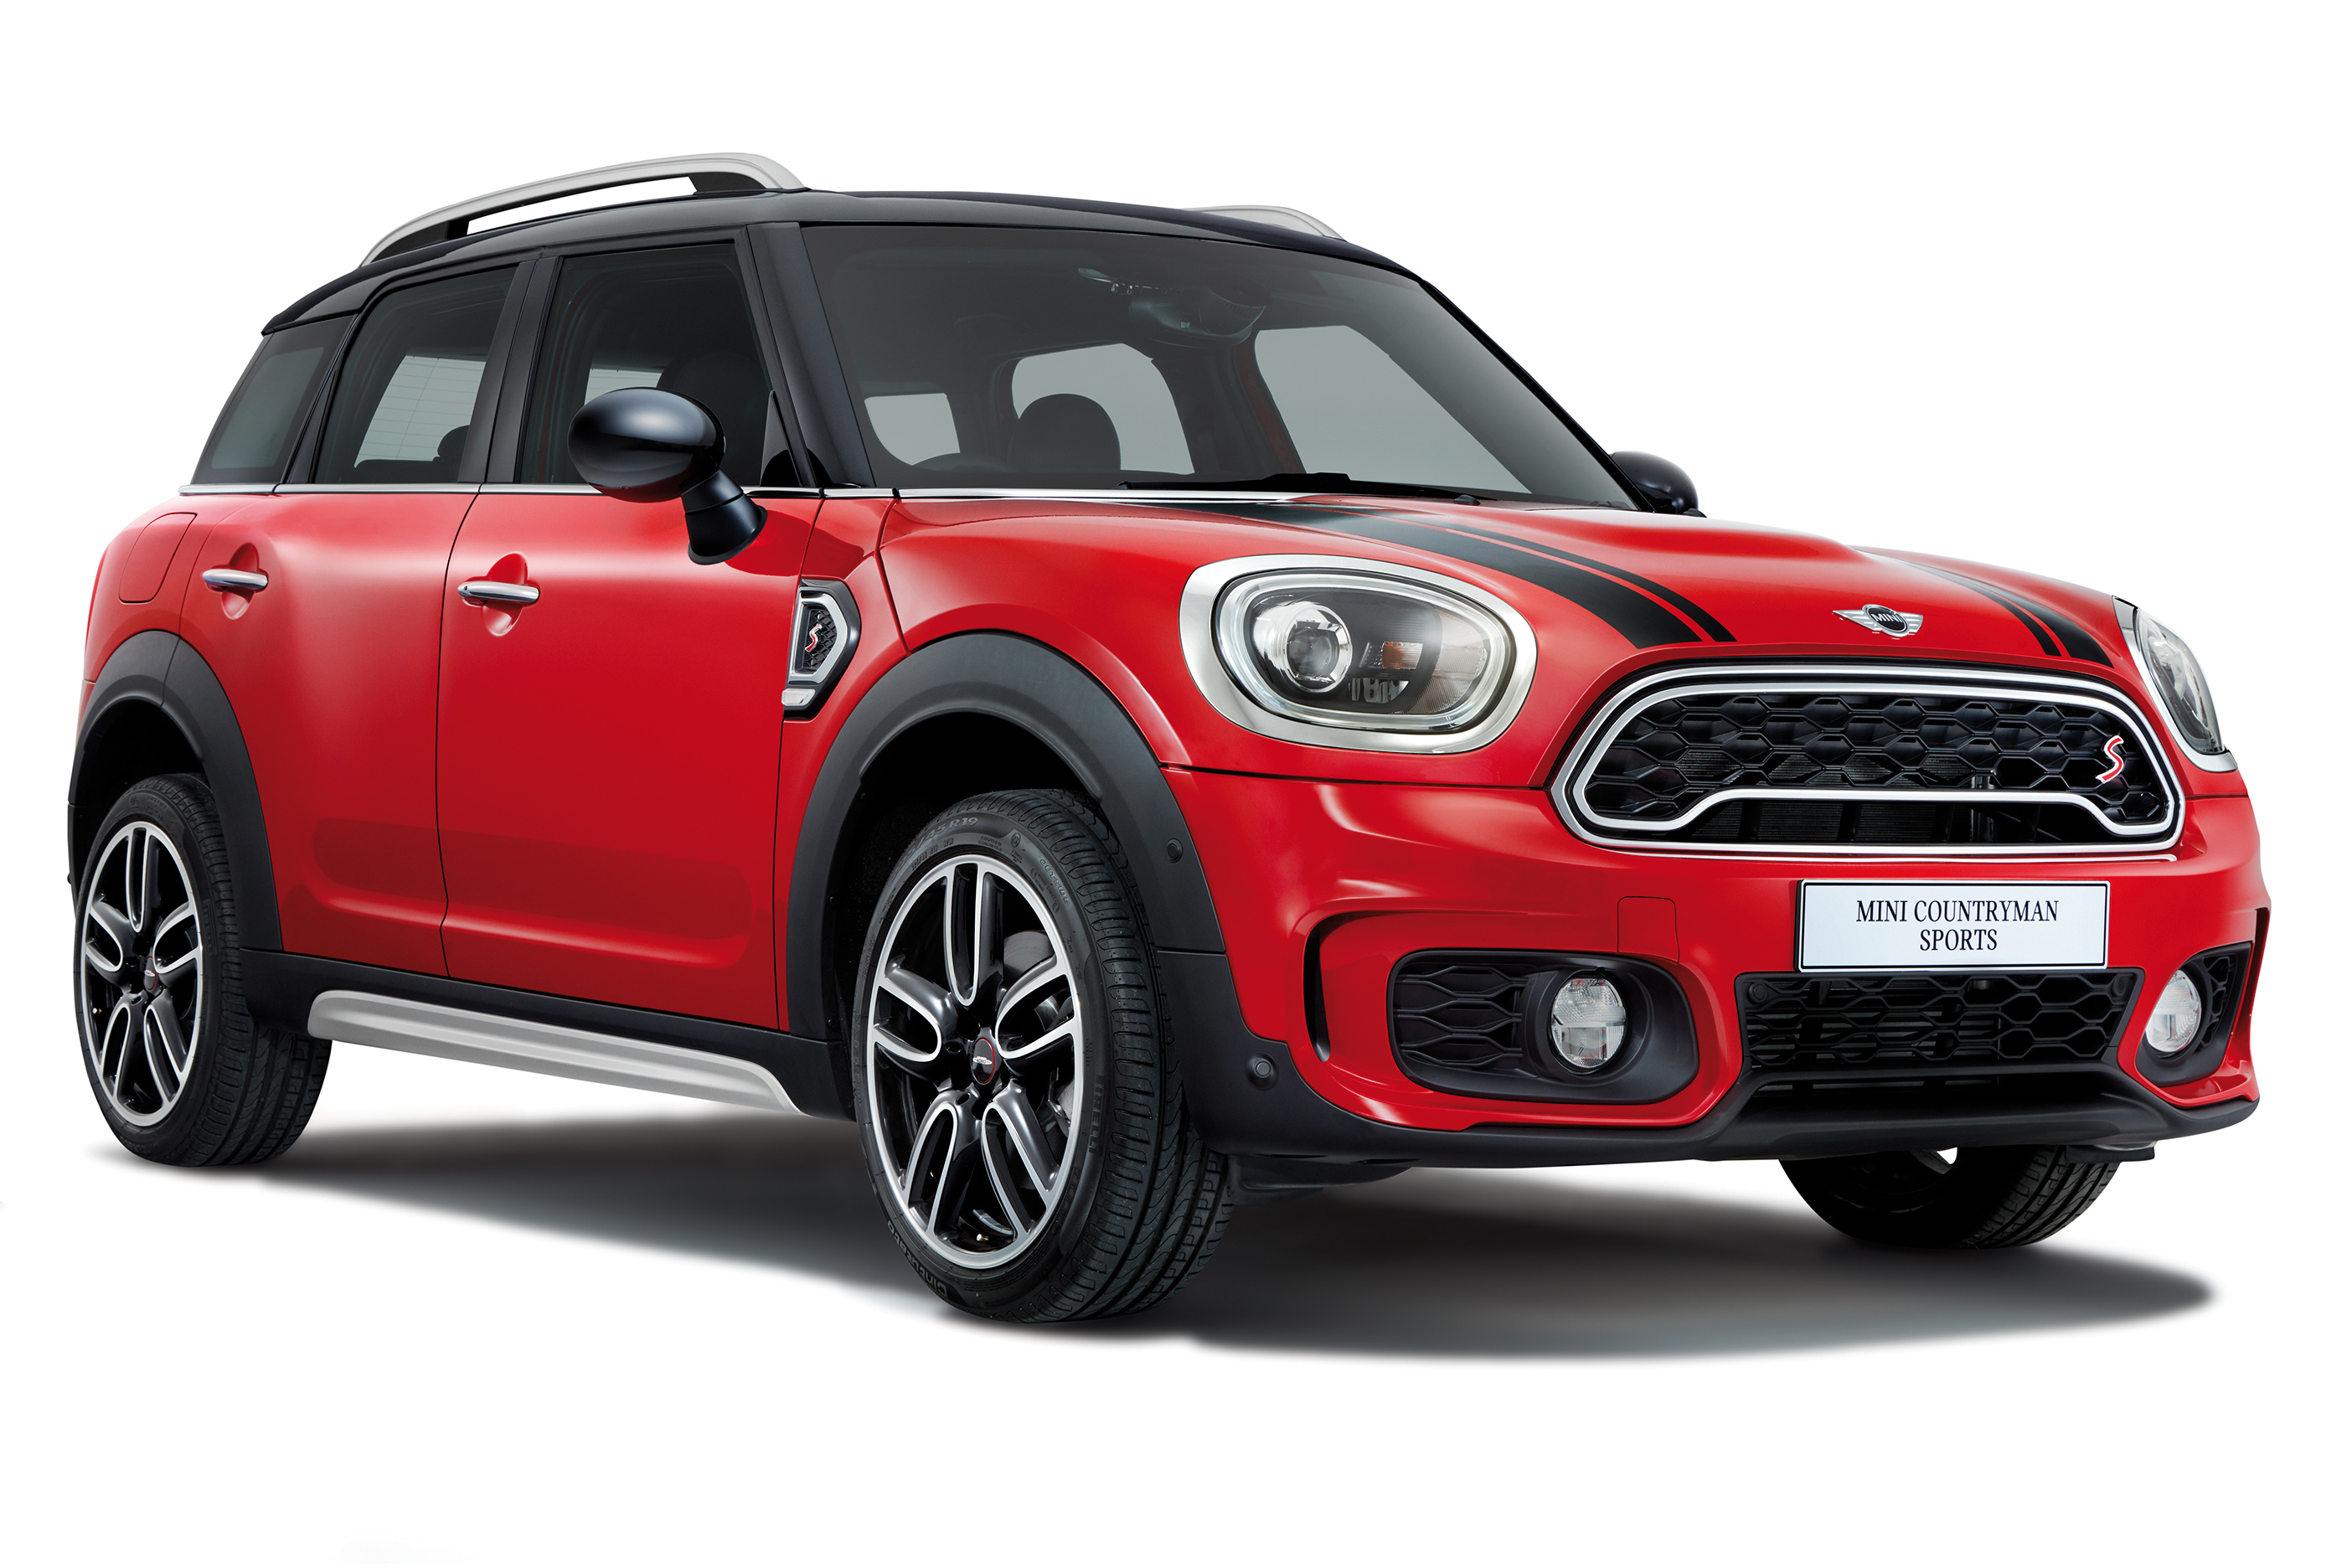 MINI Malaysia introduces the New MINI Countryman Plug-In Hybrid and the MINI Cooper S Countryman Sports 4